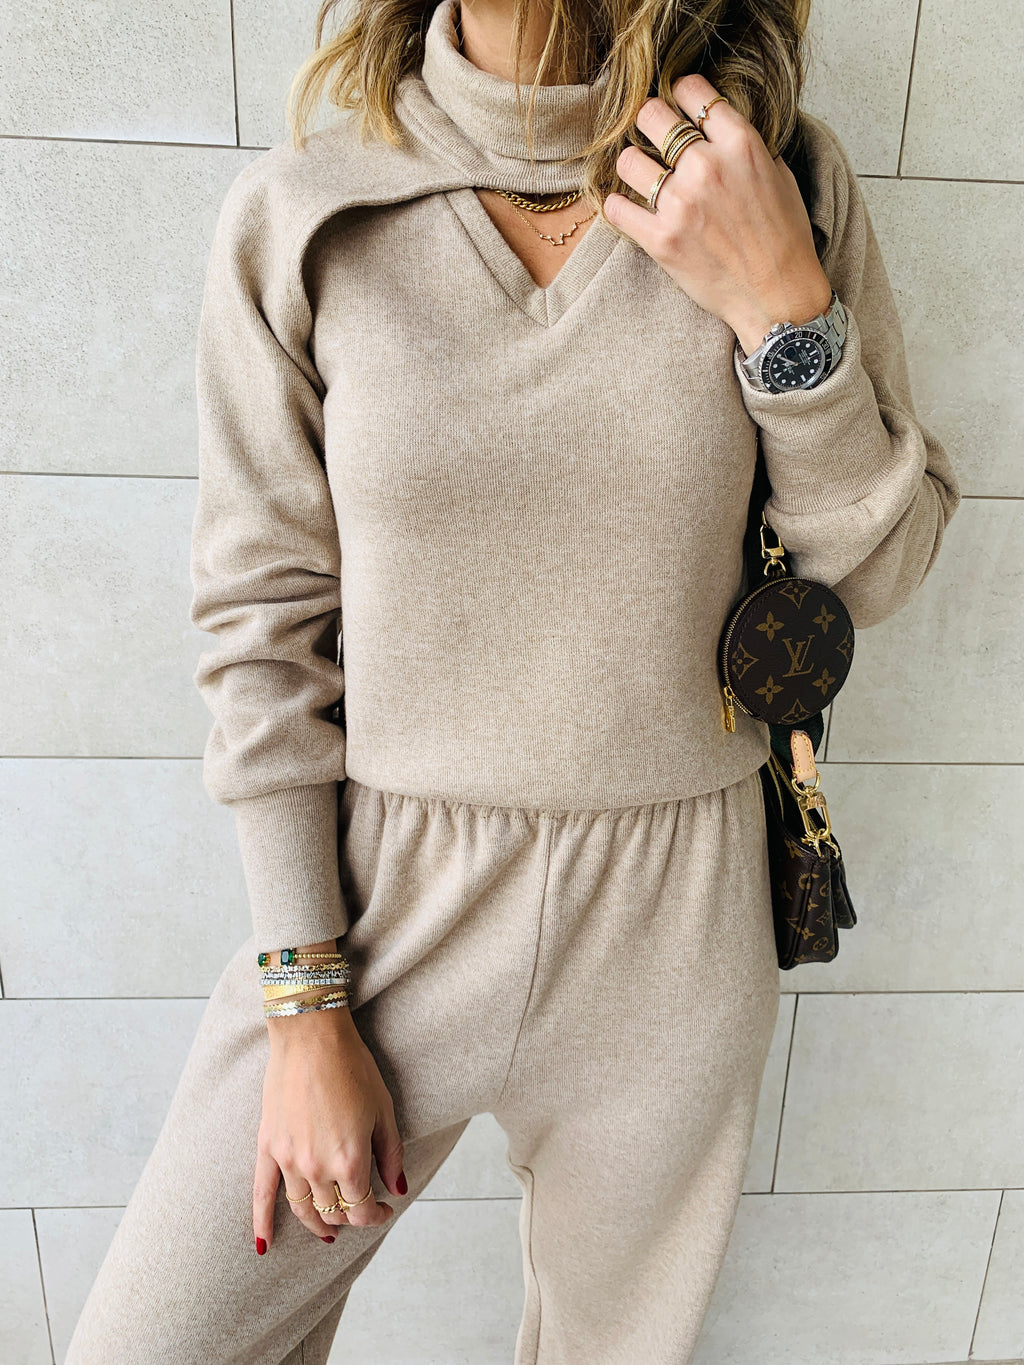 3 Piece Beige Knit Set